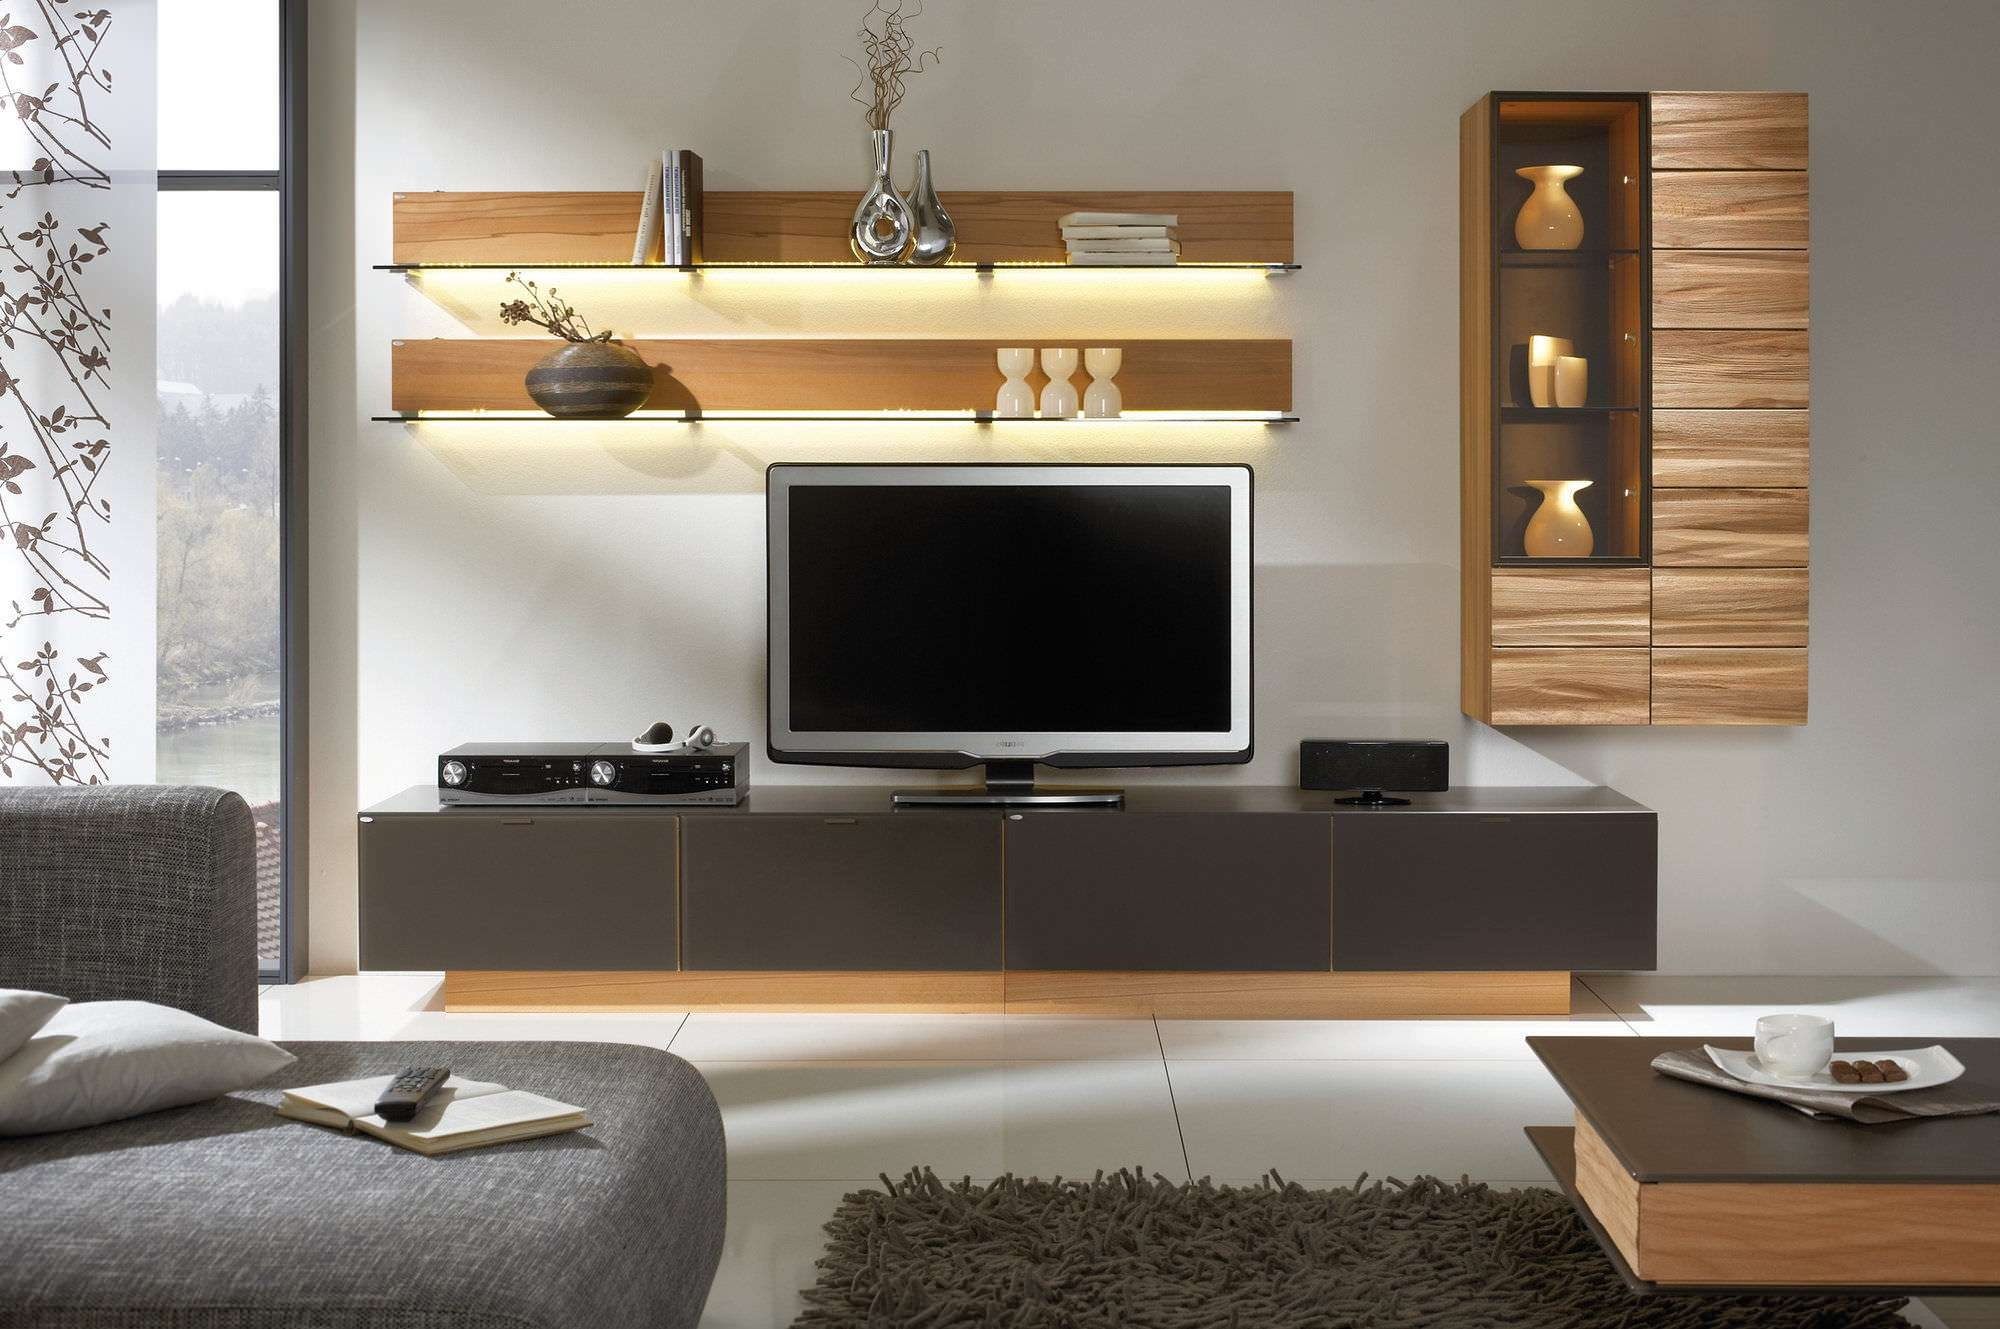 Bedroom : Tv Stand Unit Led Tv Table Wall Cabinets For Living Room Inside Under Tv Cabinets (View 3 of 20)